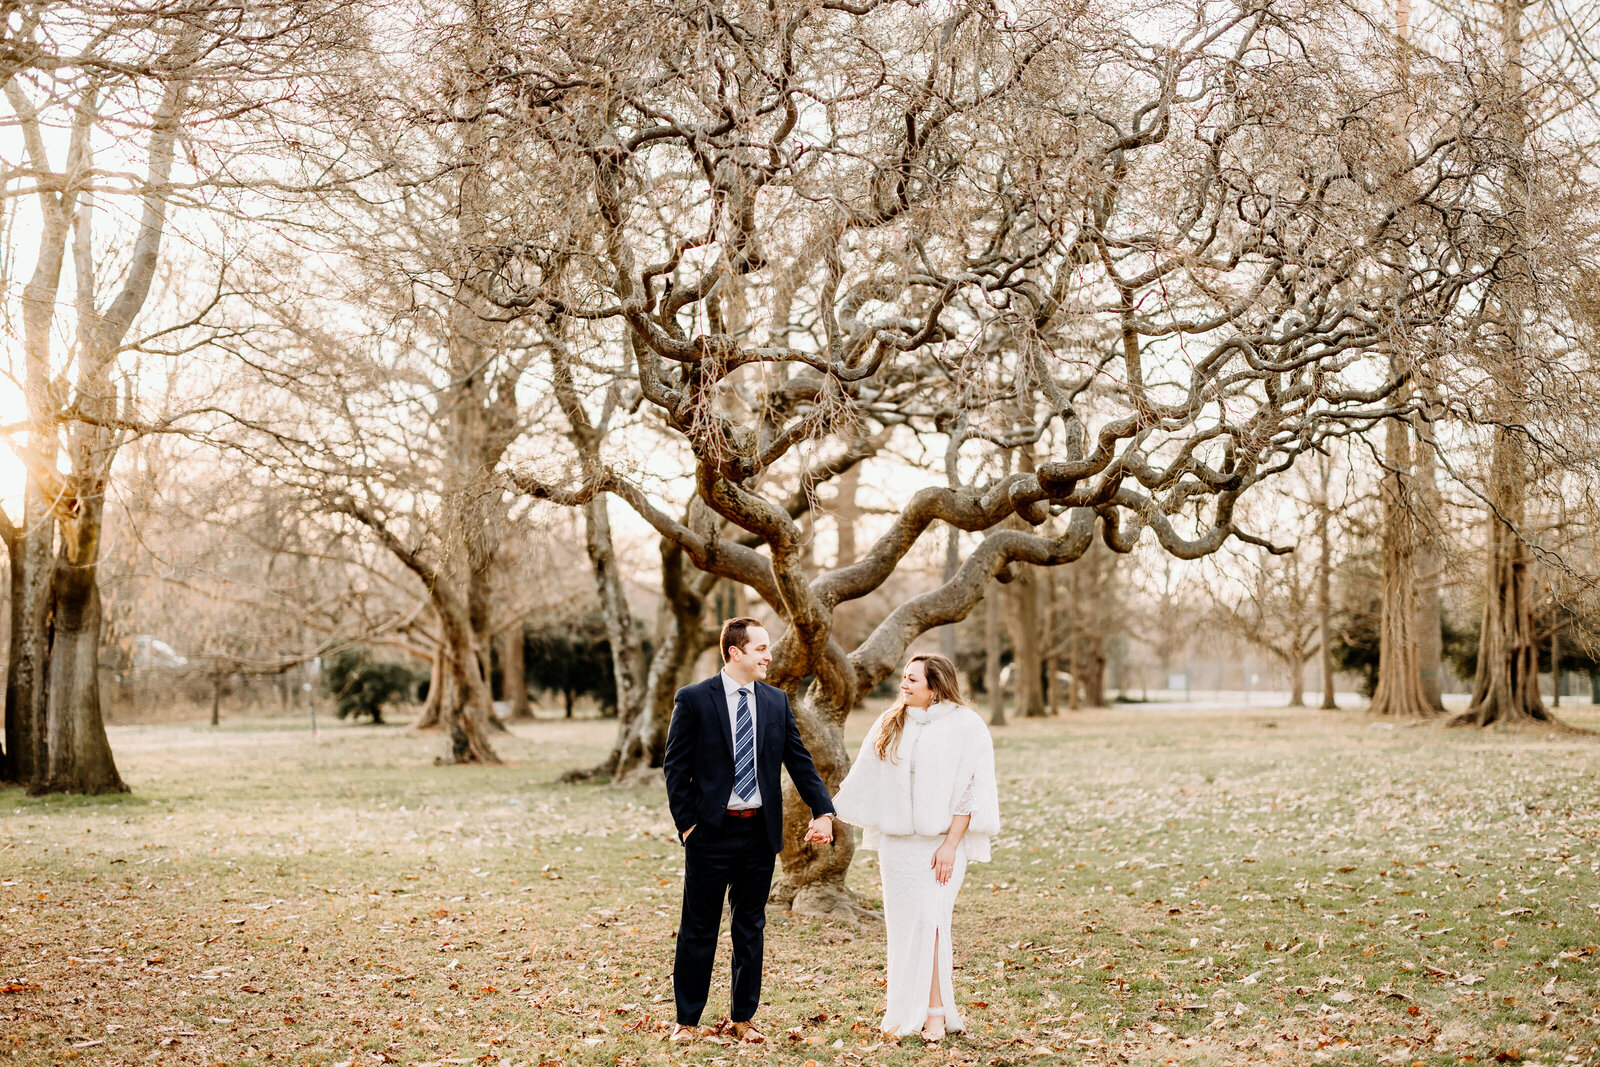 couple at horticultural center trees